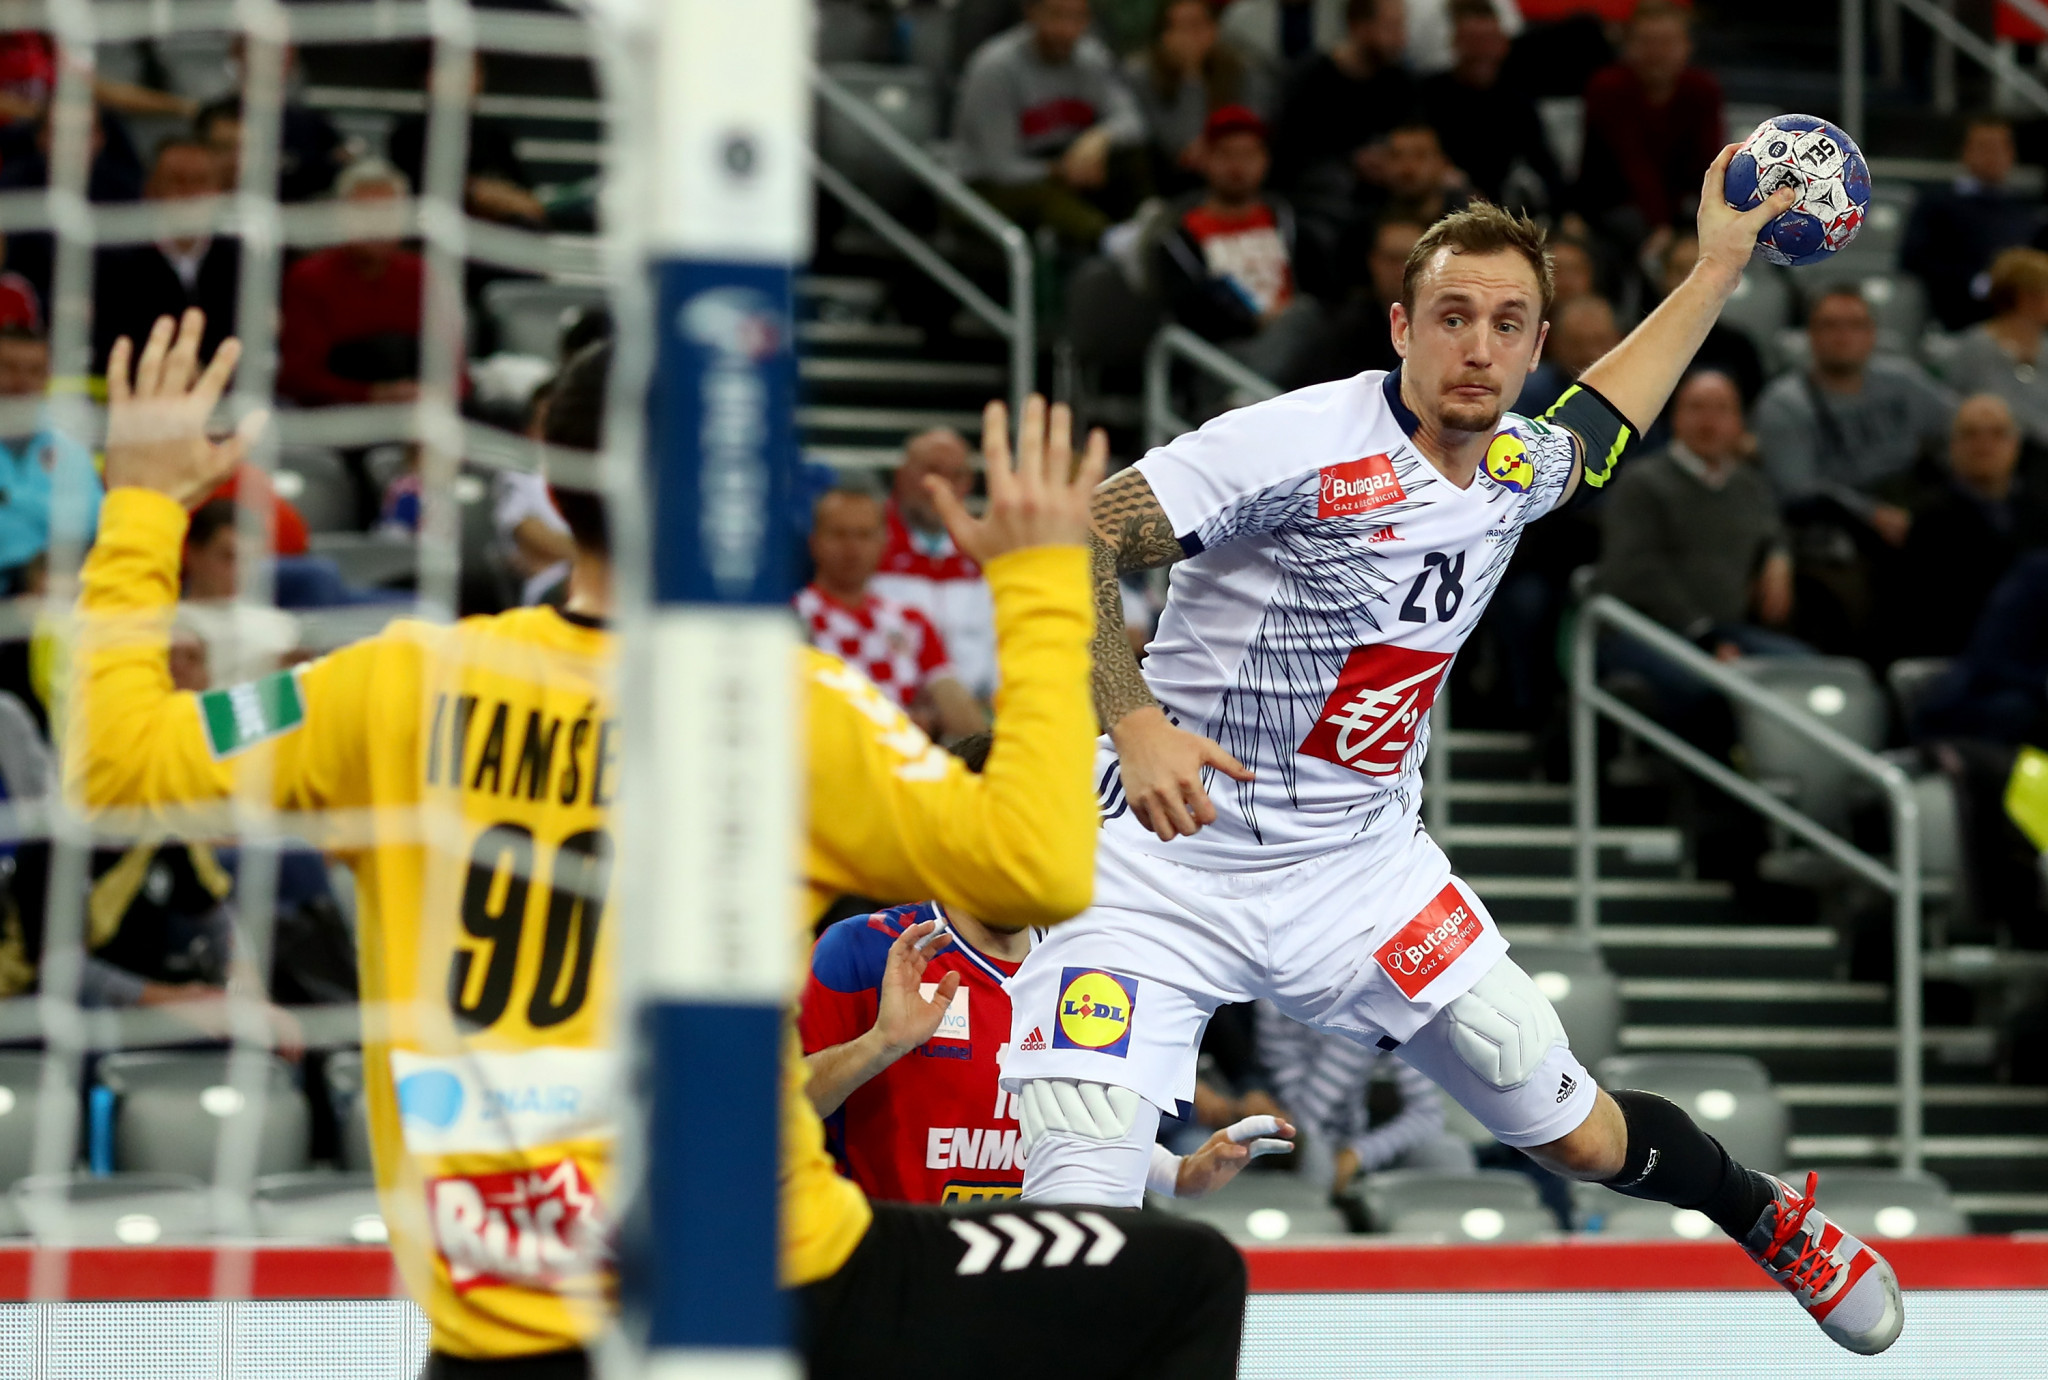 France and Sweden boost semi-final hopes at European Men's Handball Championship